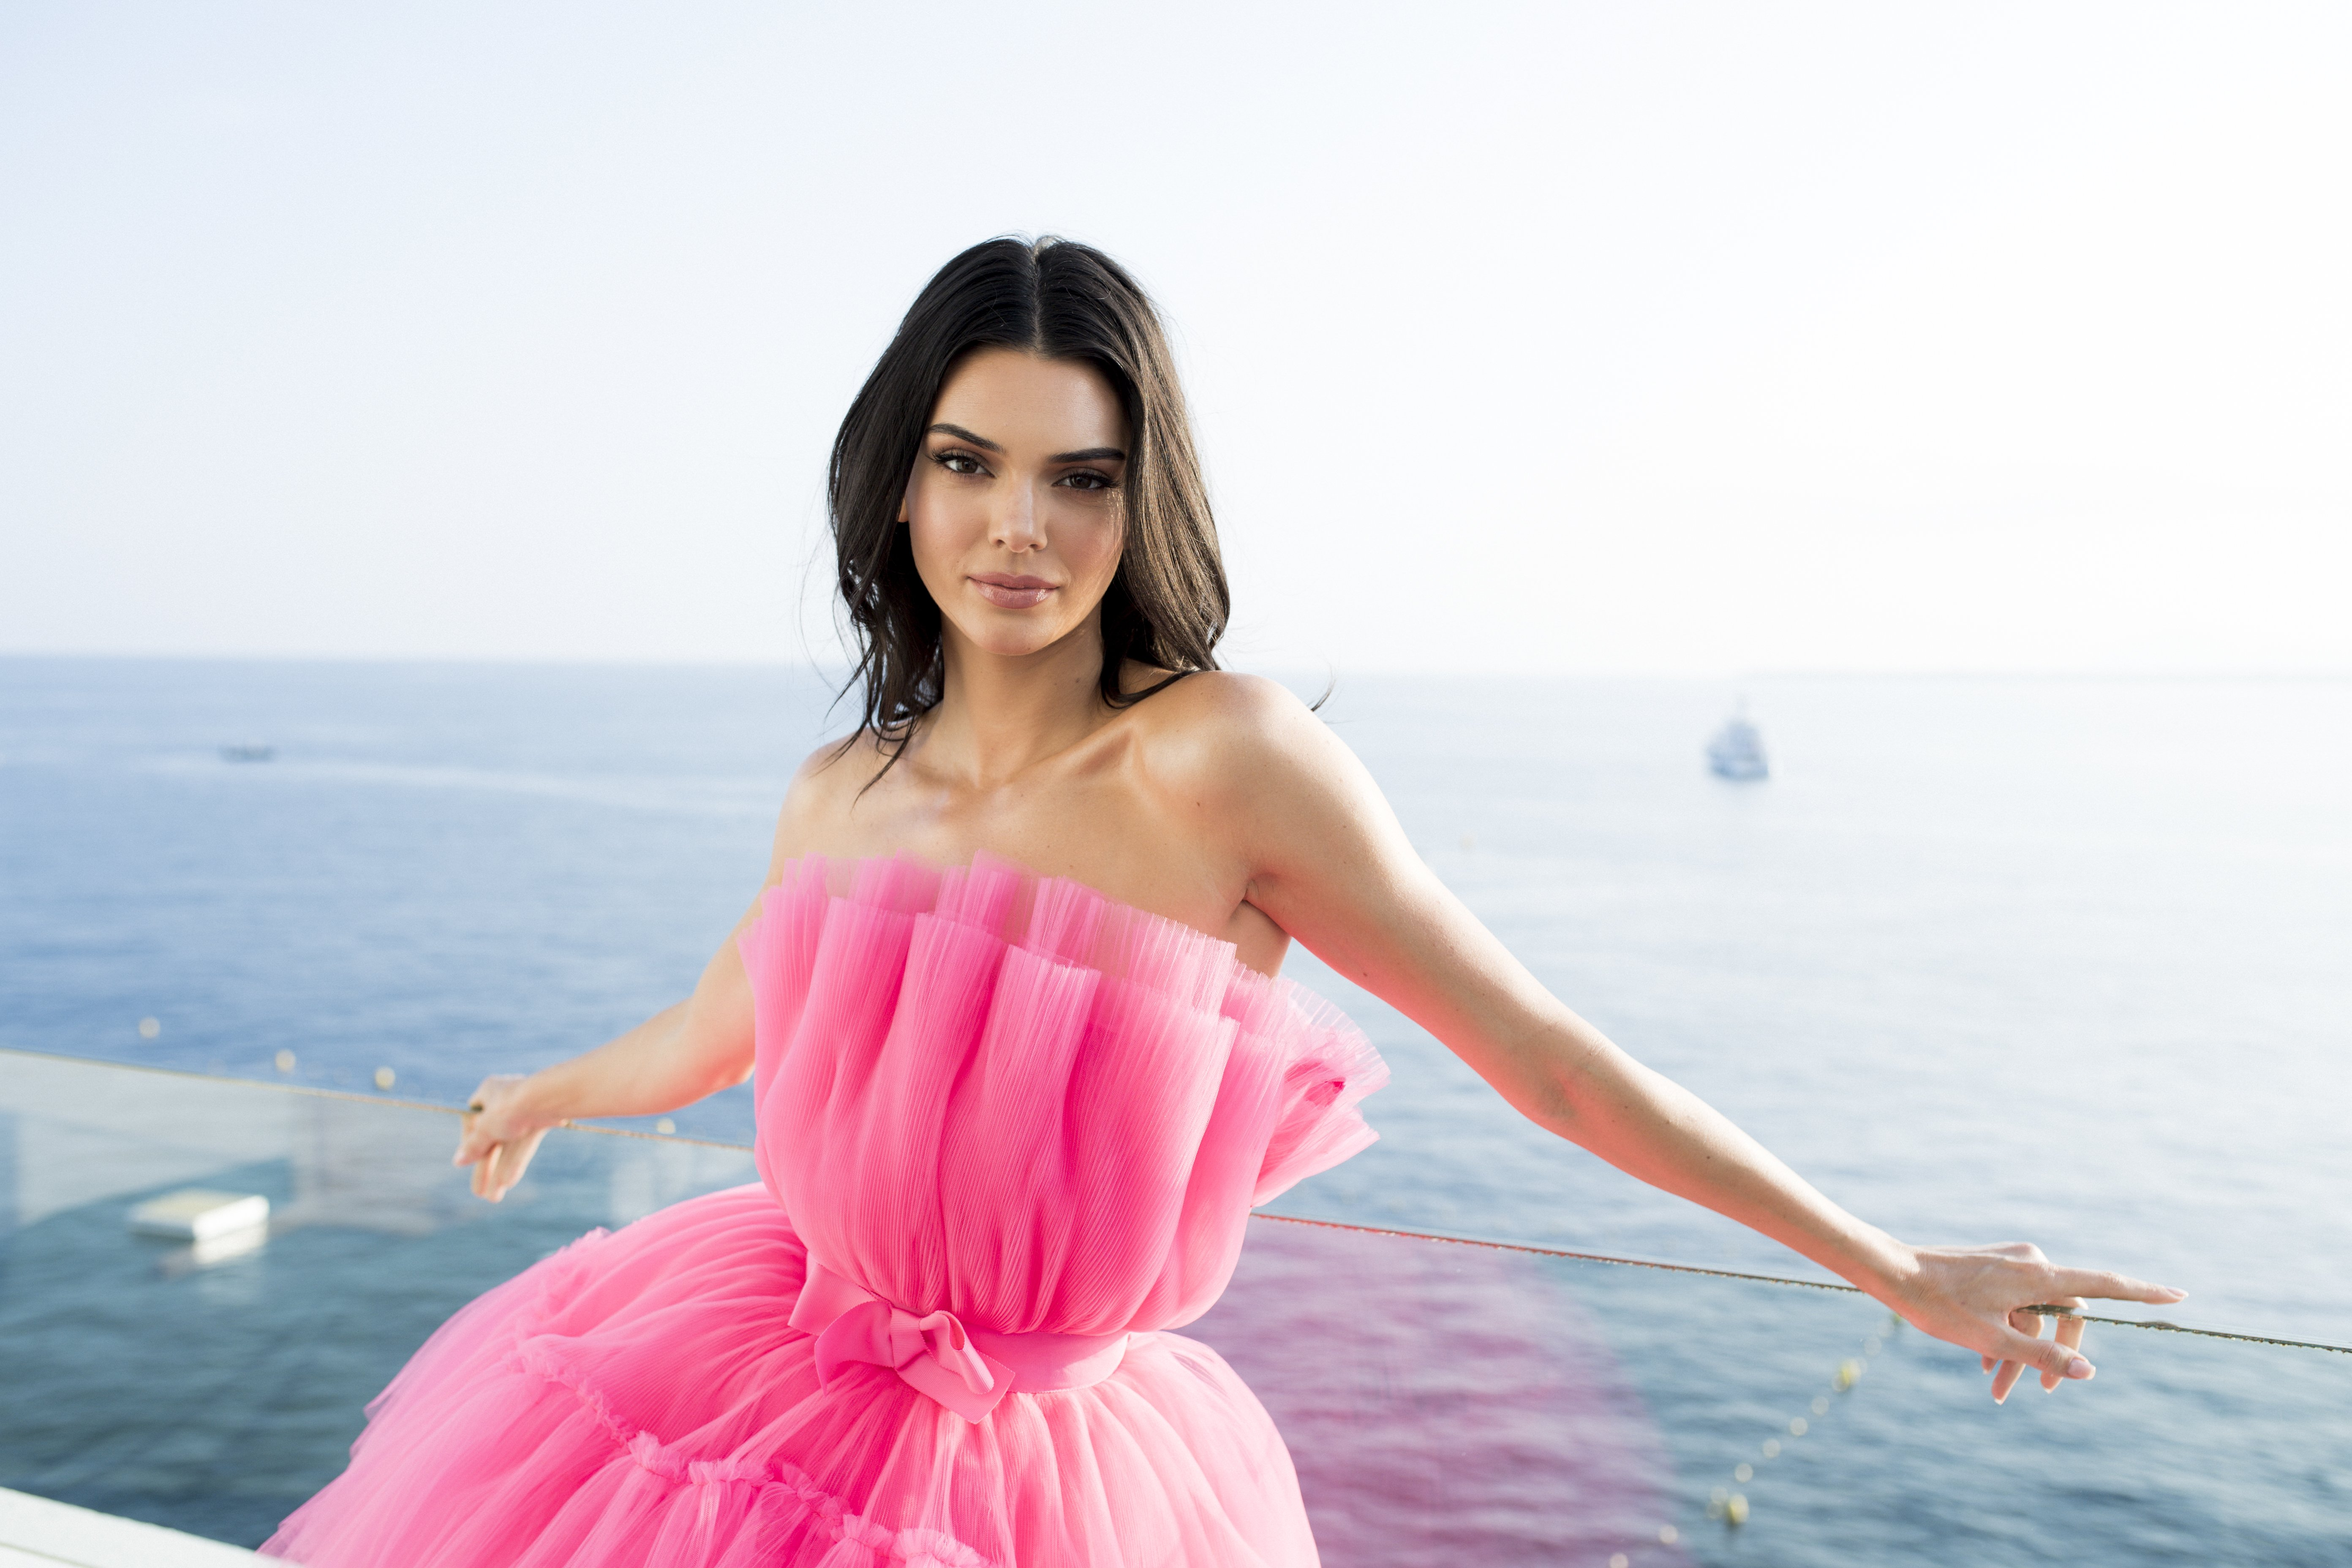 Kendall Jenner poses at the Cannes Gala in Cap d'Antibes, France on May 23, 2019 | Photo: Getty Images